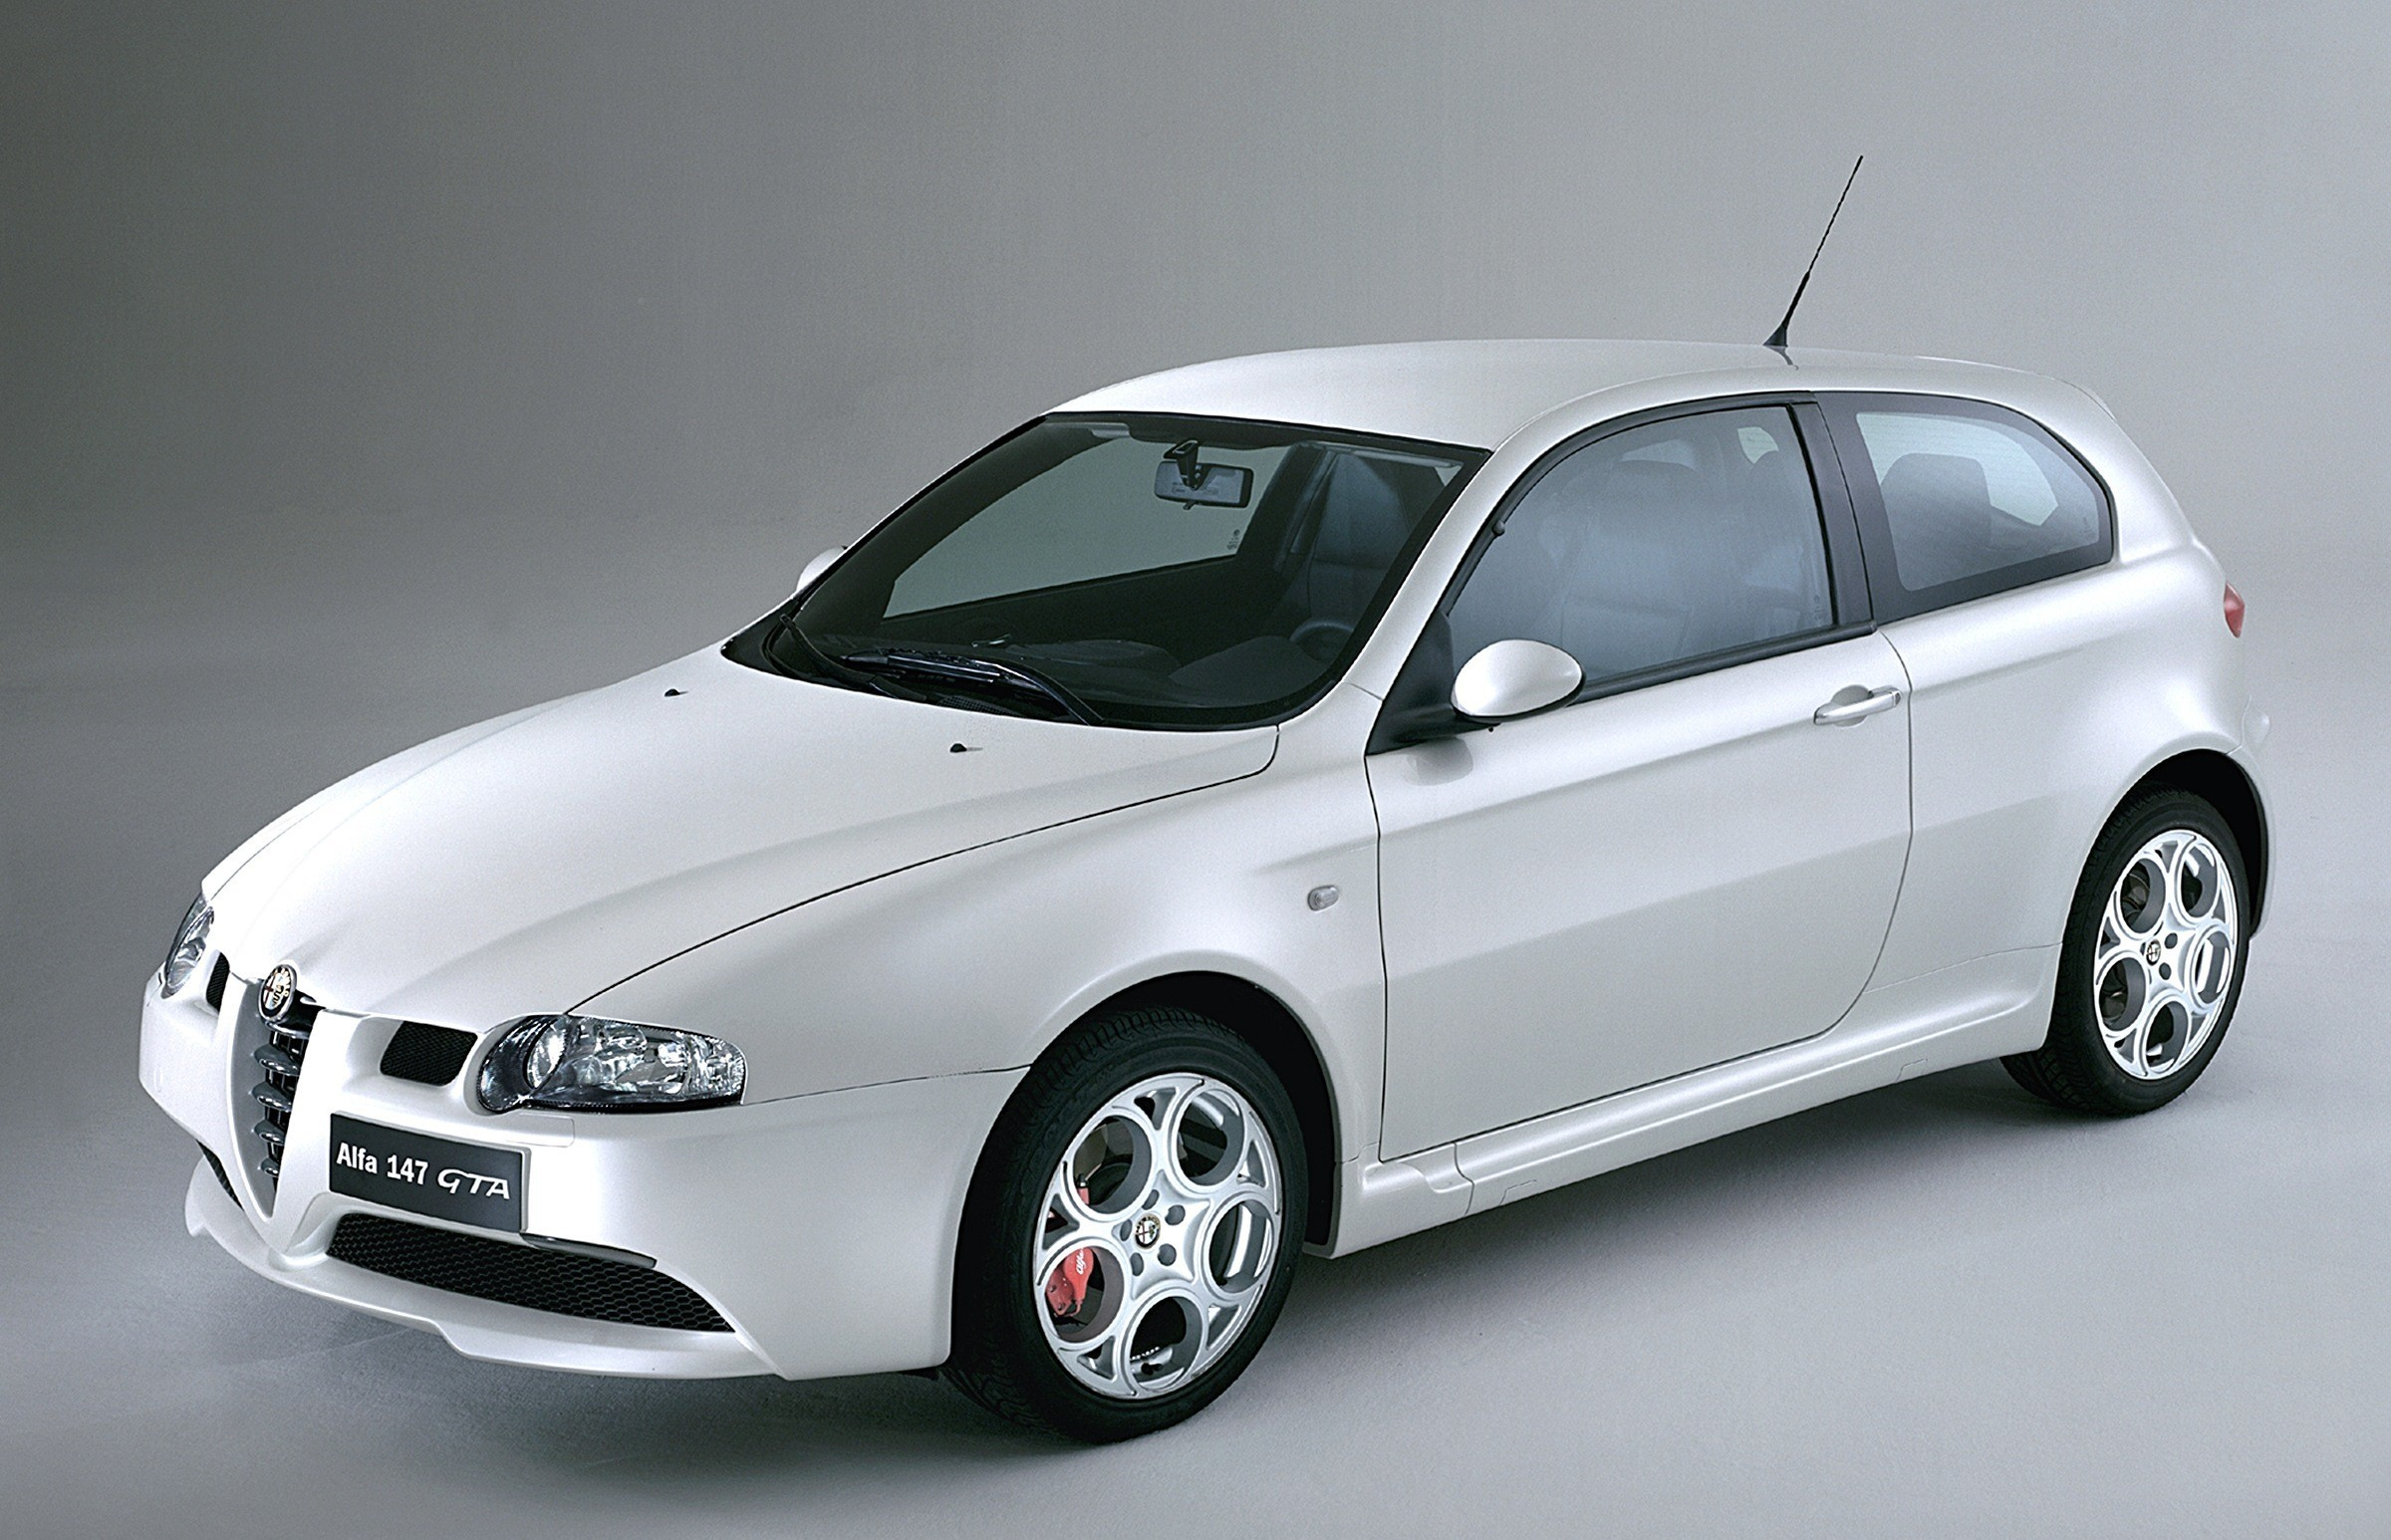 Car Wallpaper App Alfa Romeo 147 Gta 2002 Picture 13321